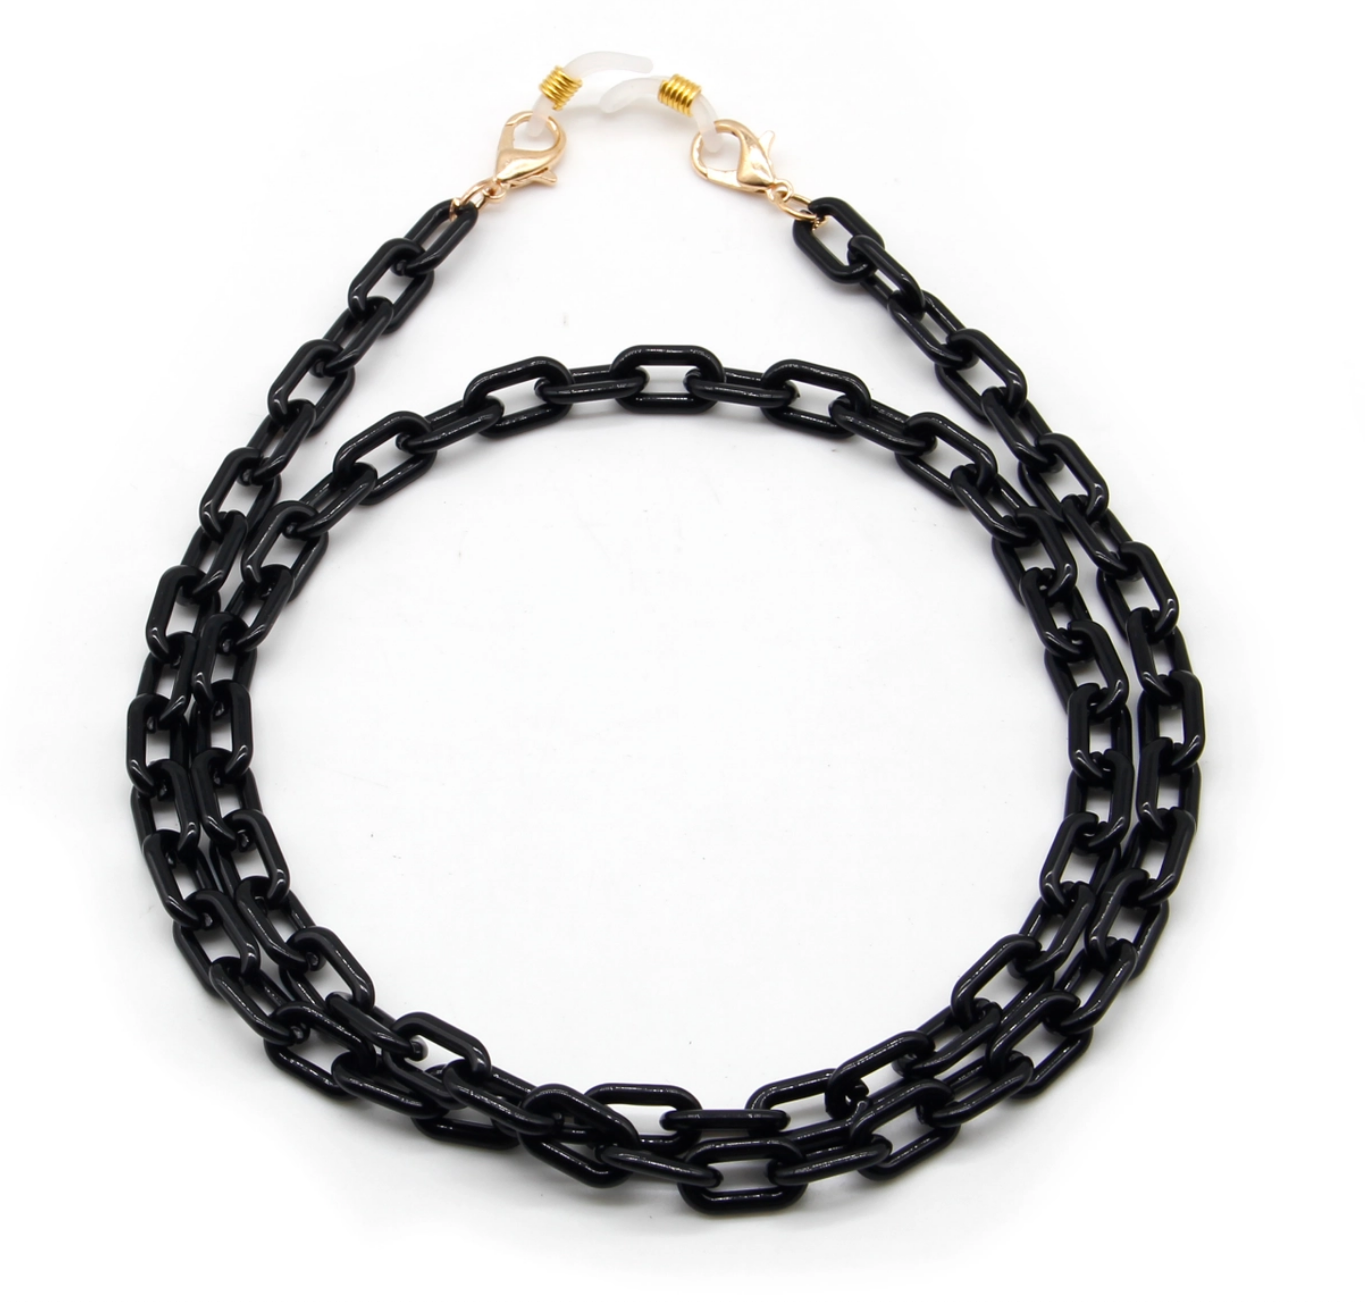 Milk + Sass Mask Chain (Small) - Black